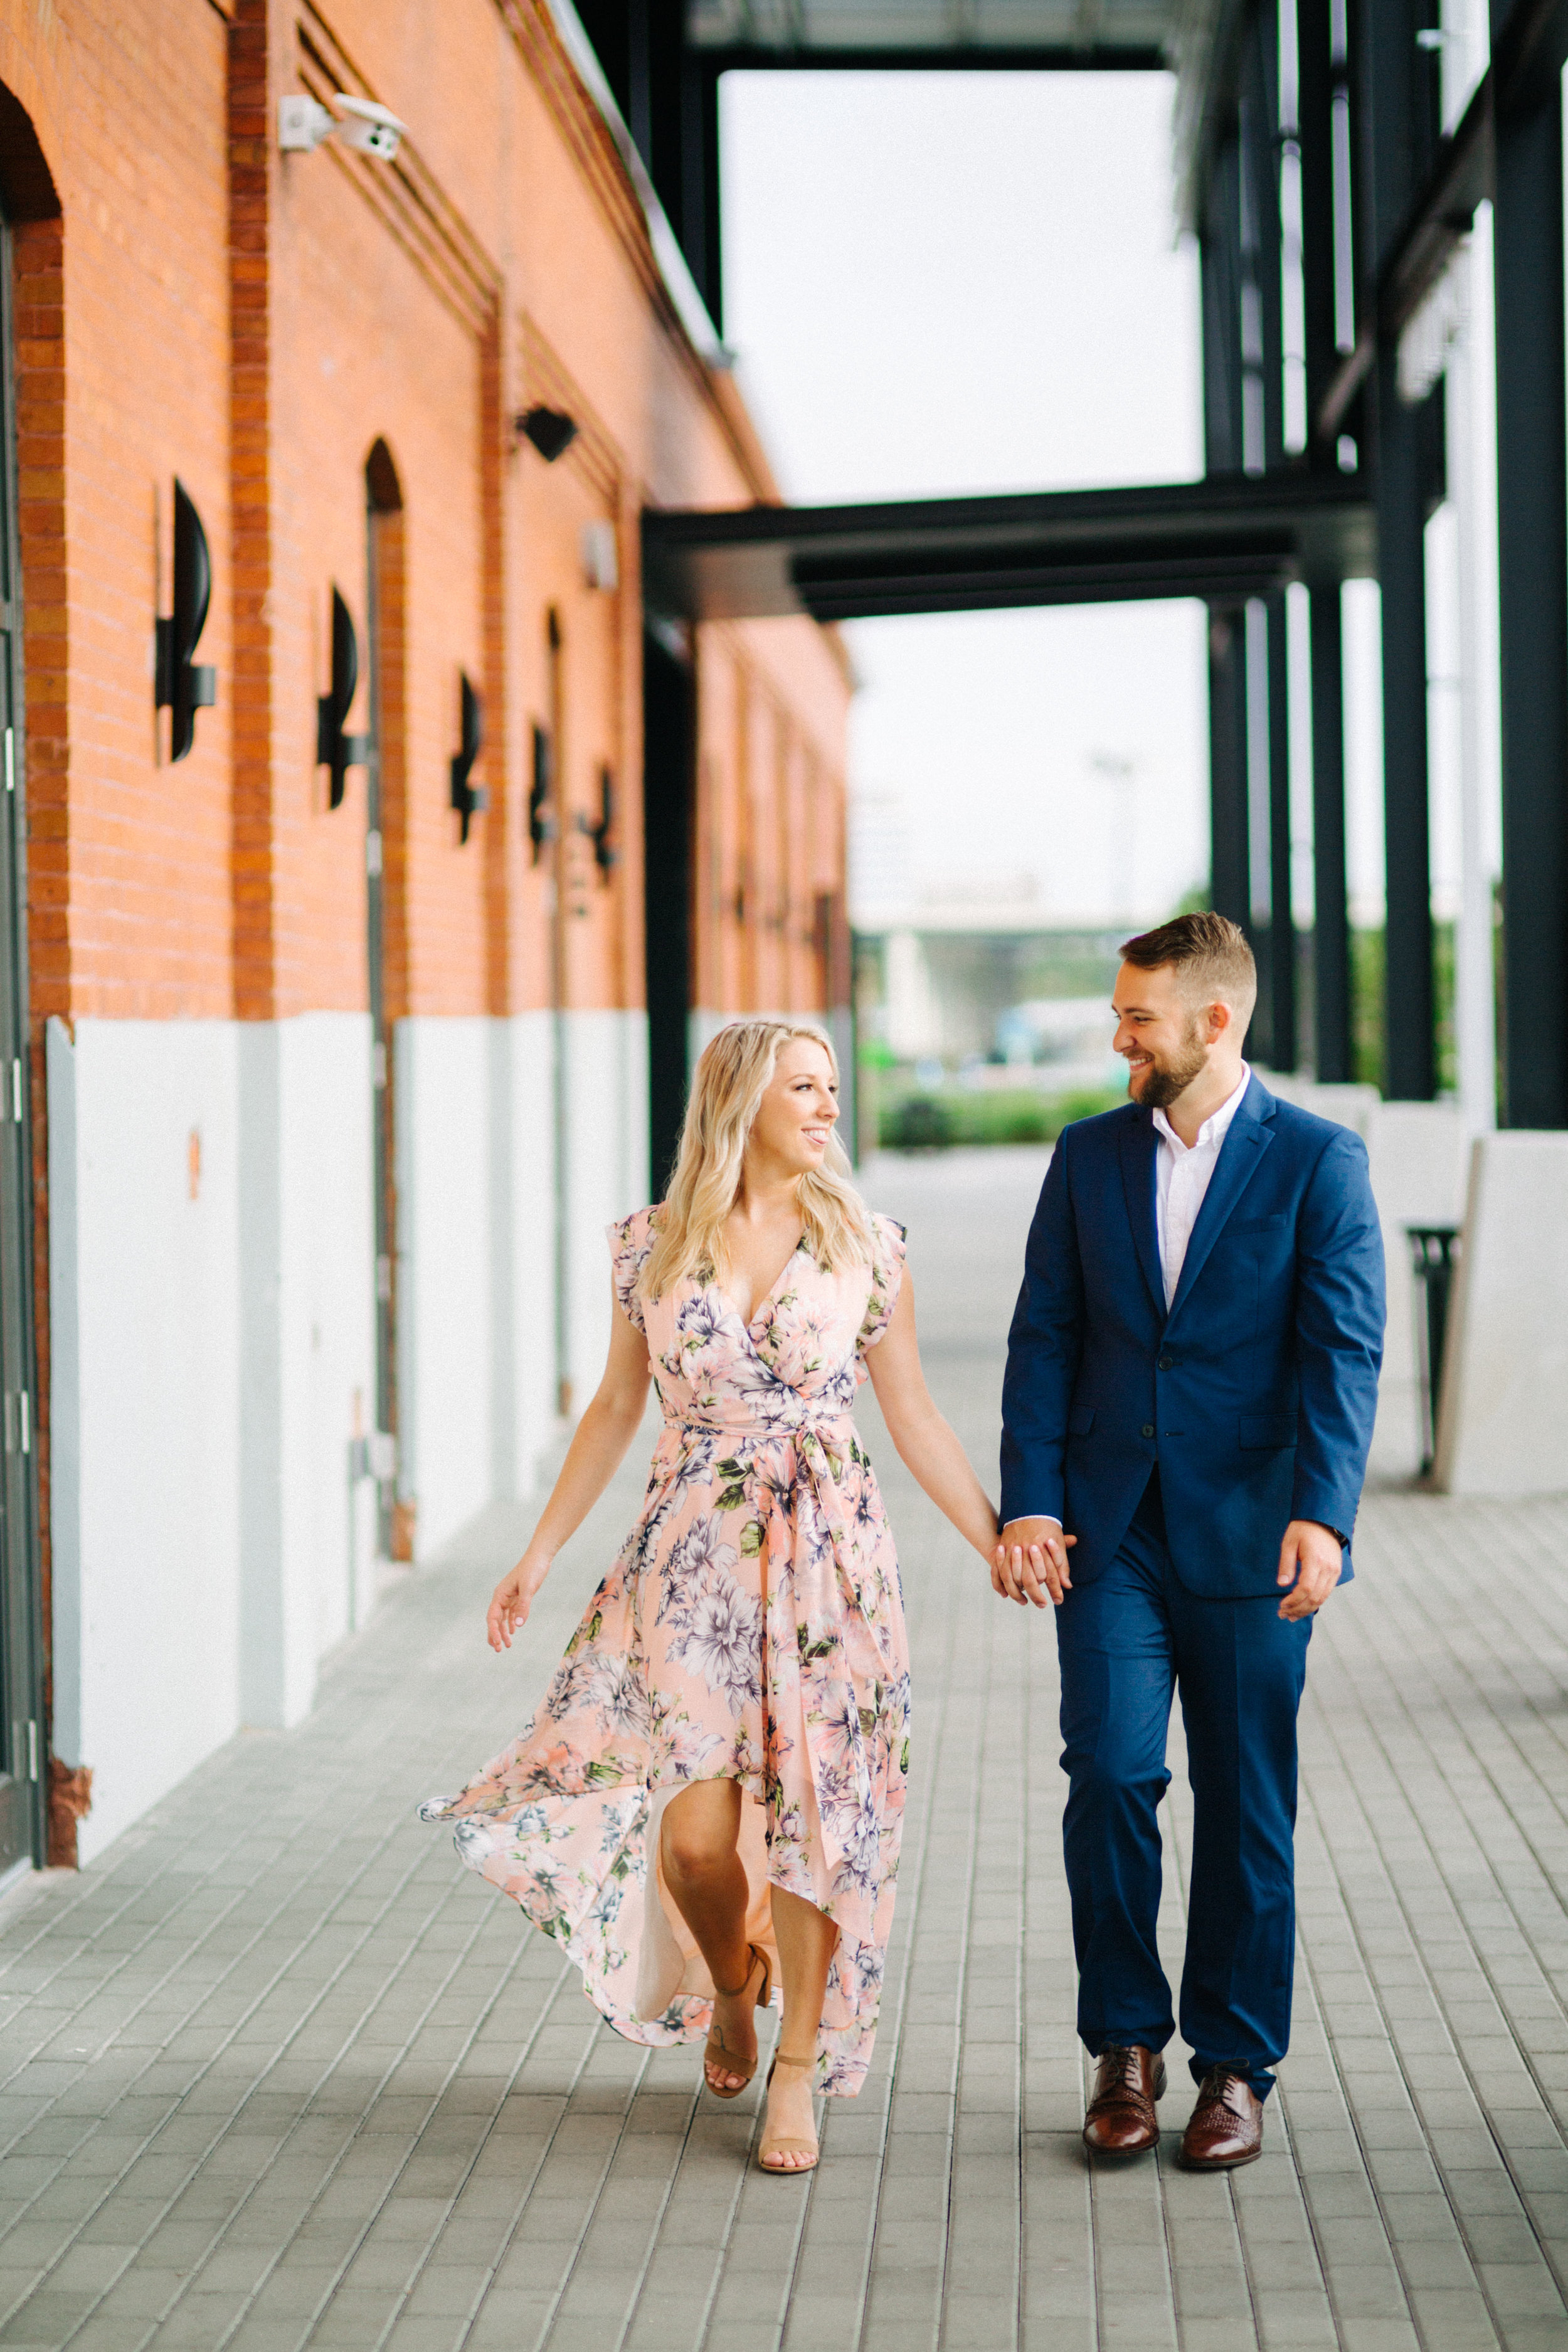 Kyle & Victoria's Engagement Session - Jake & Katie Photography_099.jpg